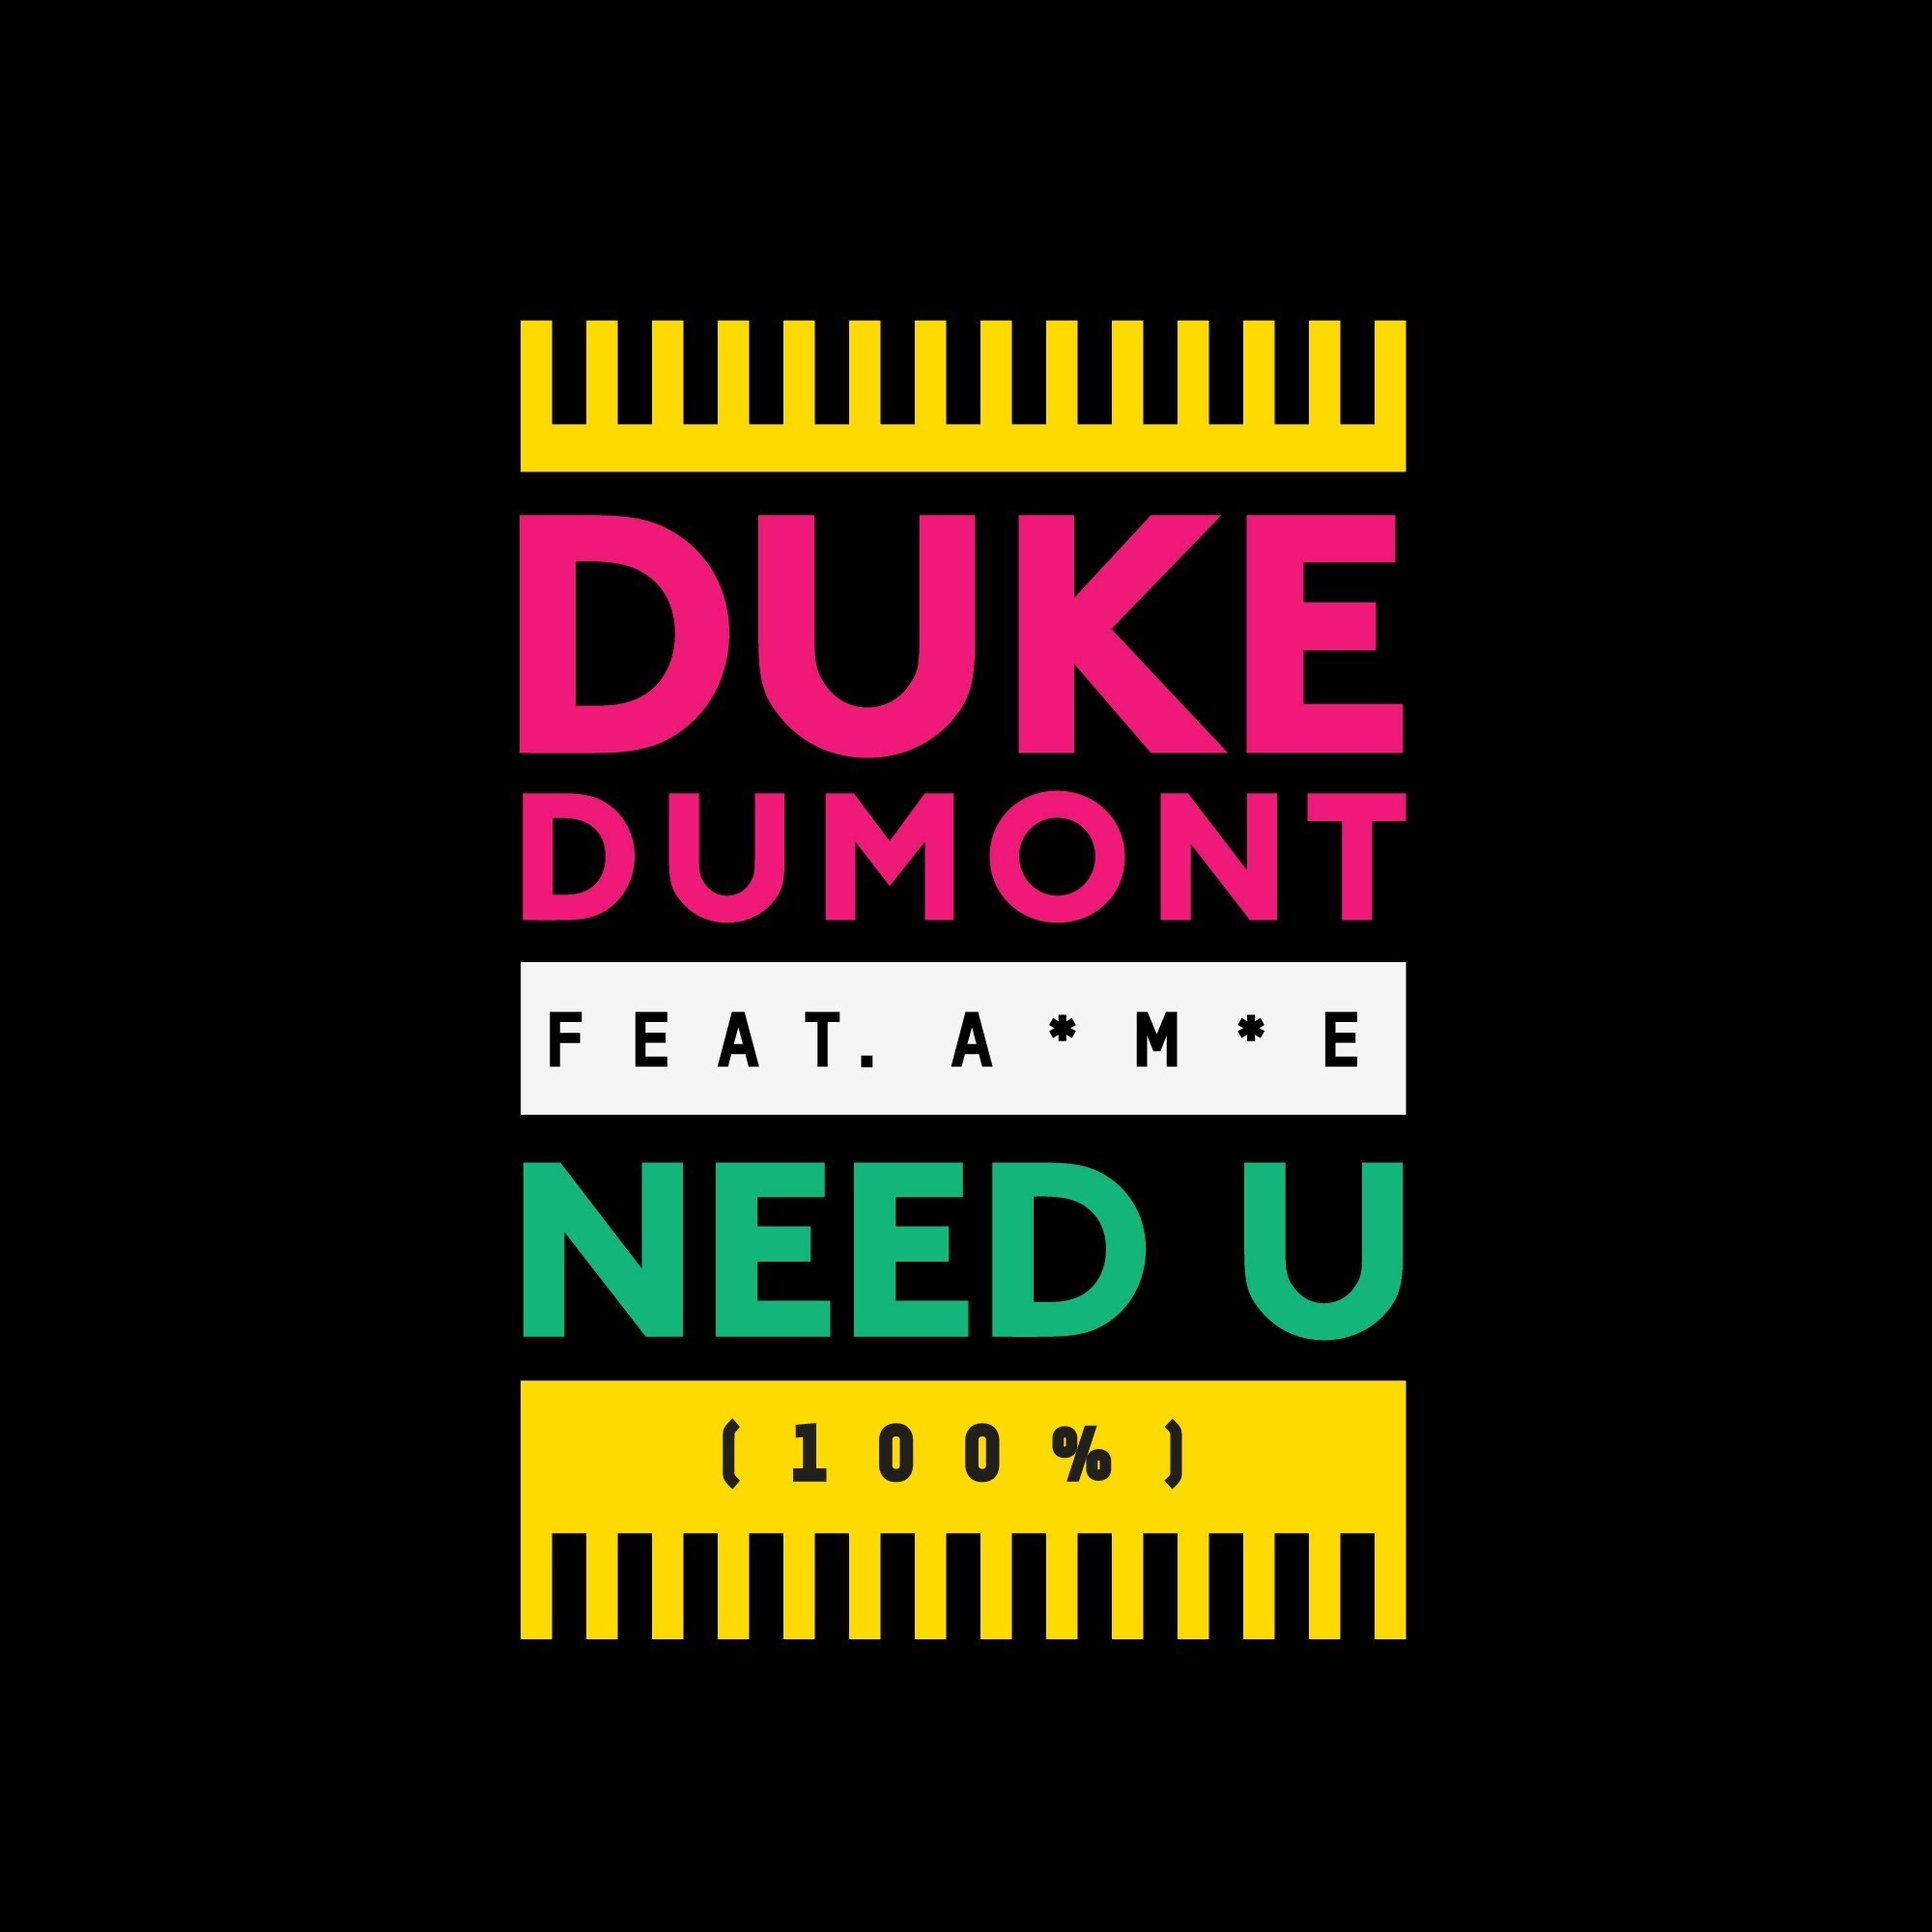 Need You (100%) | Duke Dumont